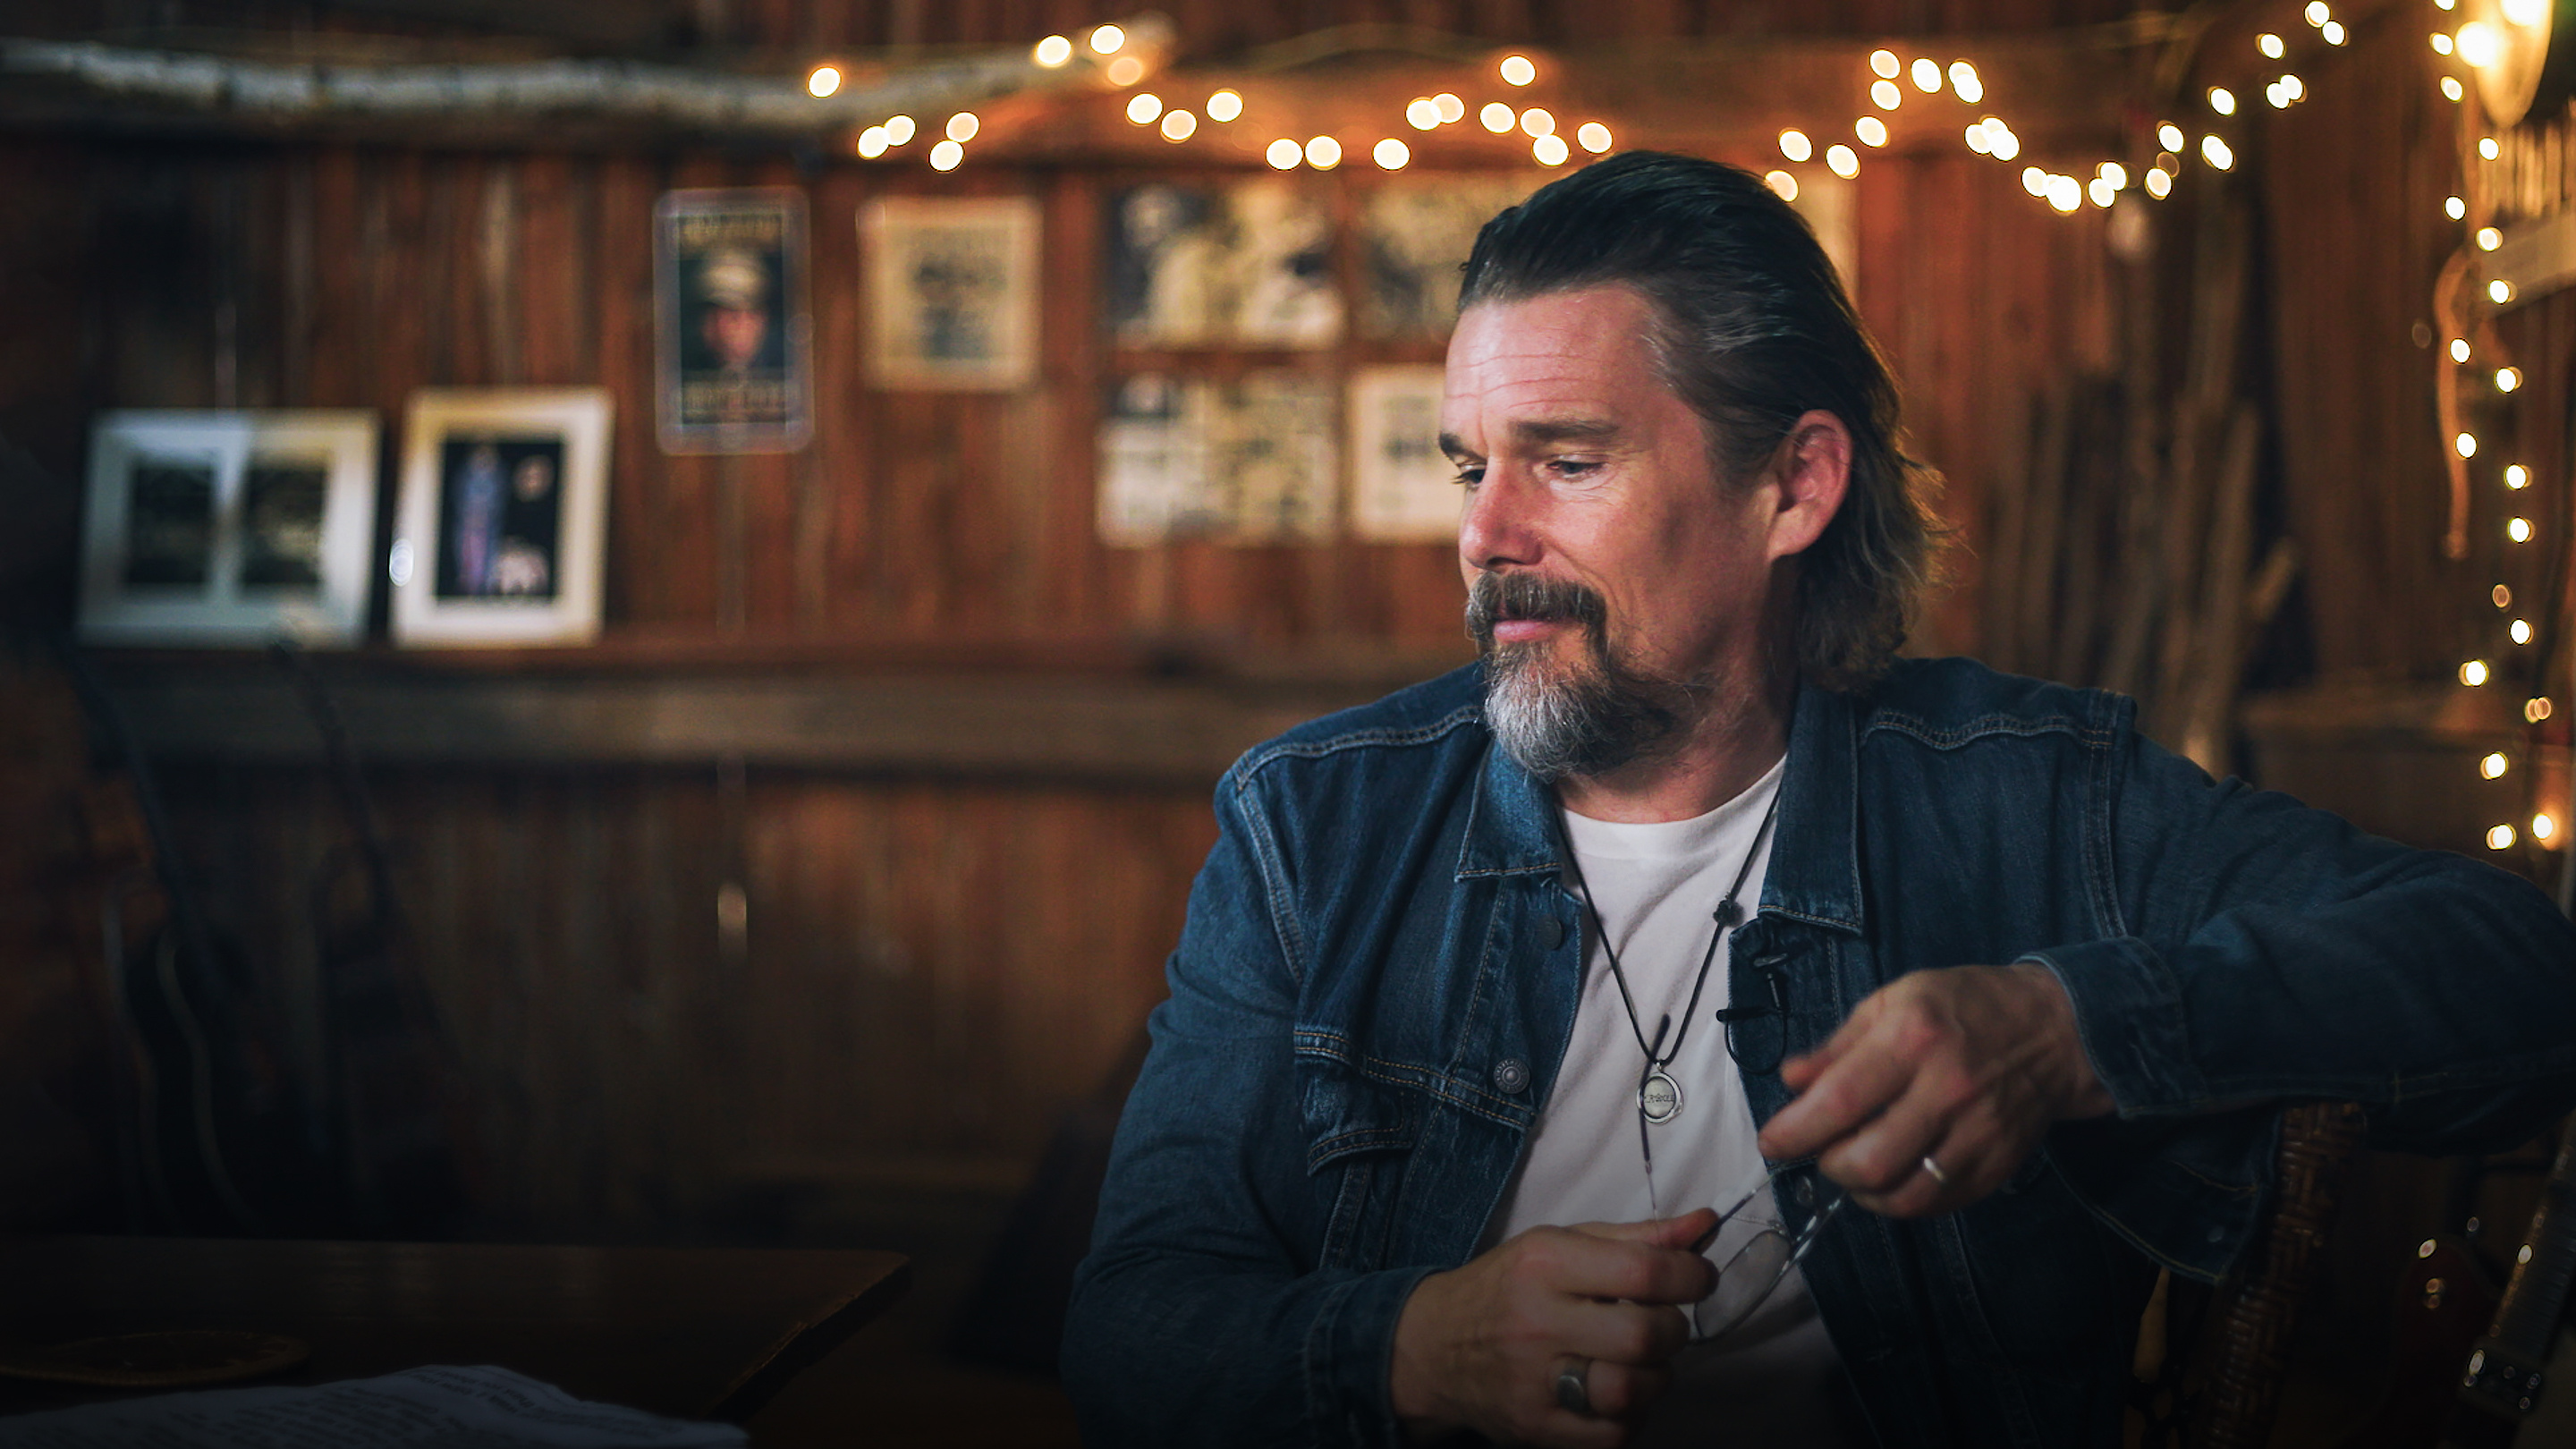 Ethanhawke 2020s embed